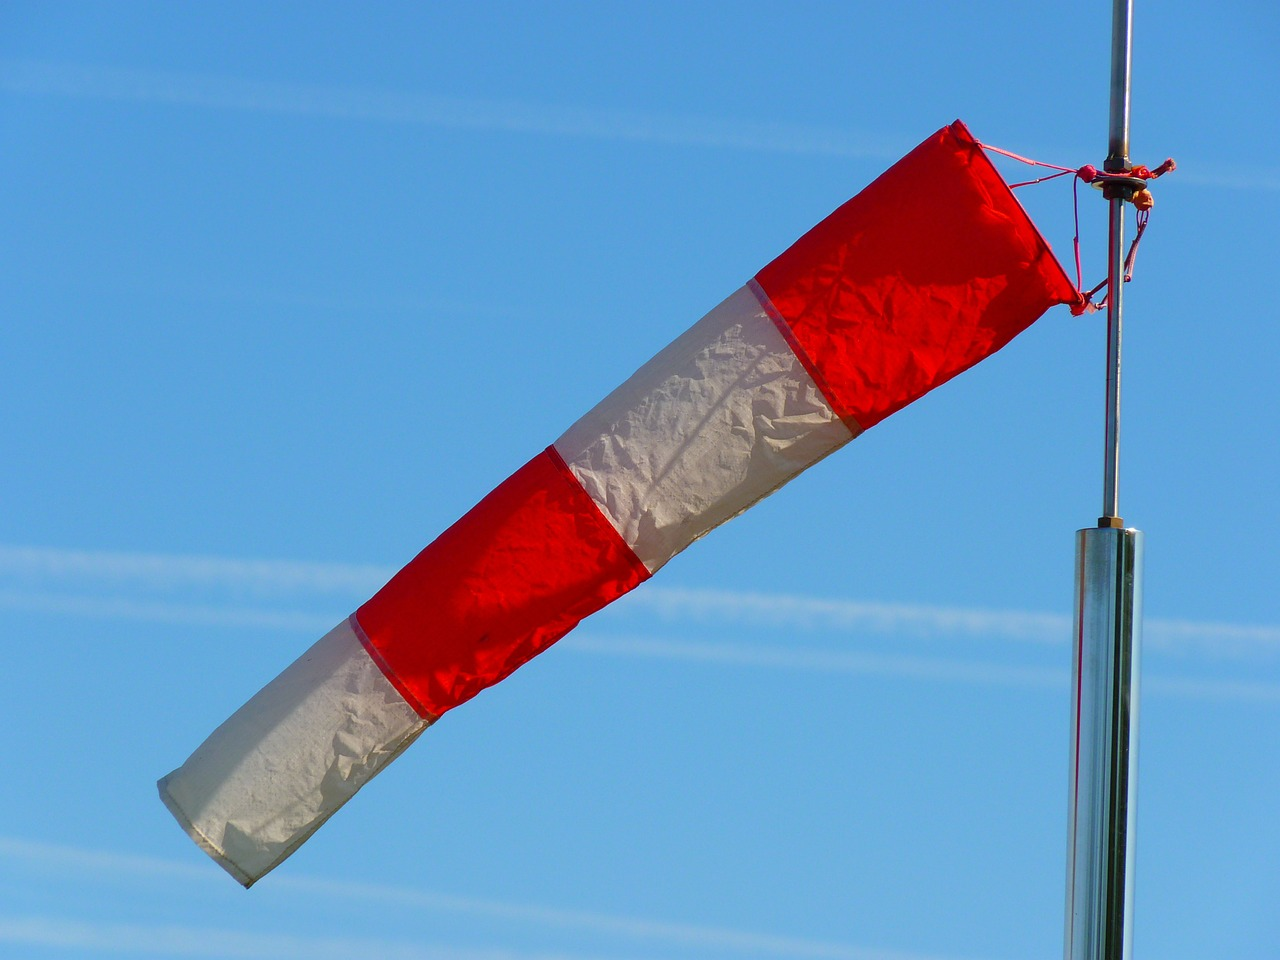 wind sock wind direction anemometer free photo